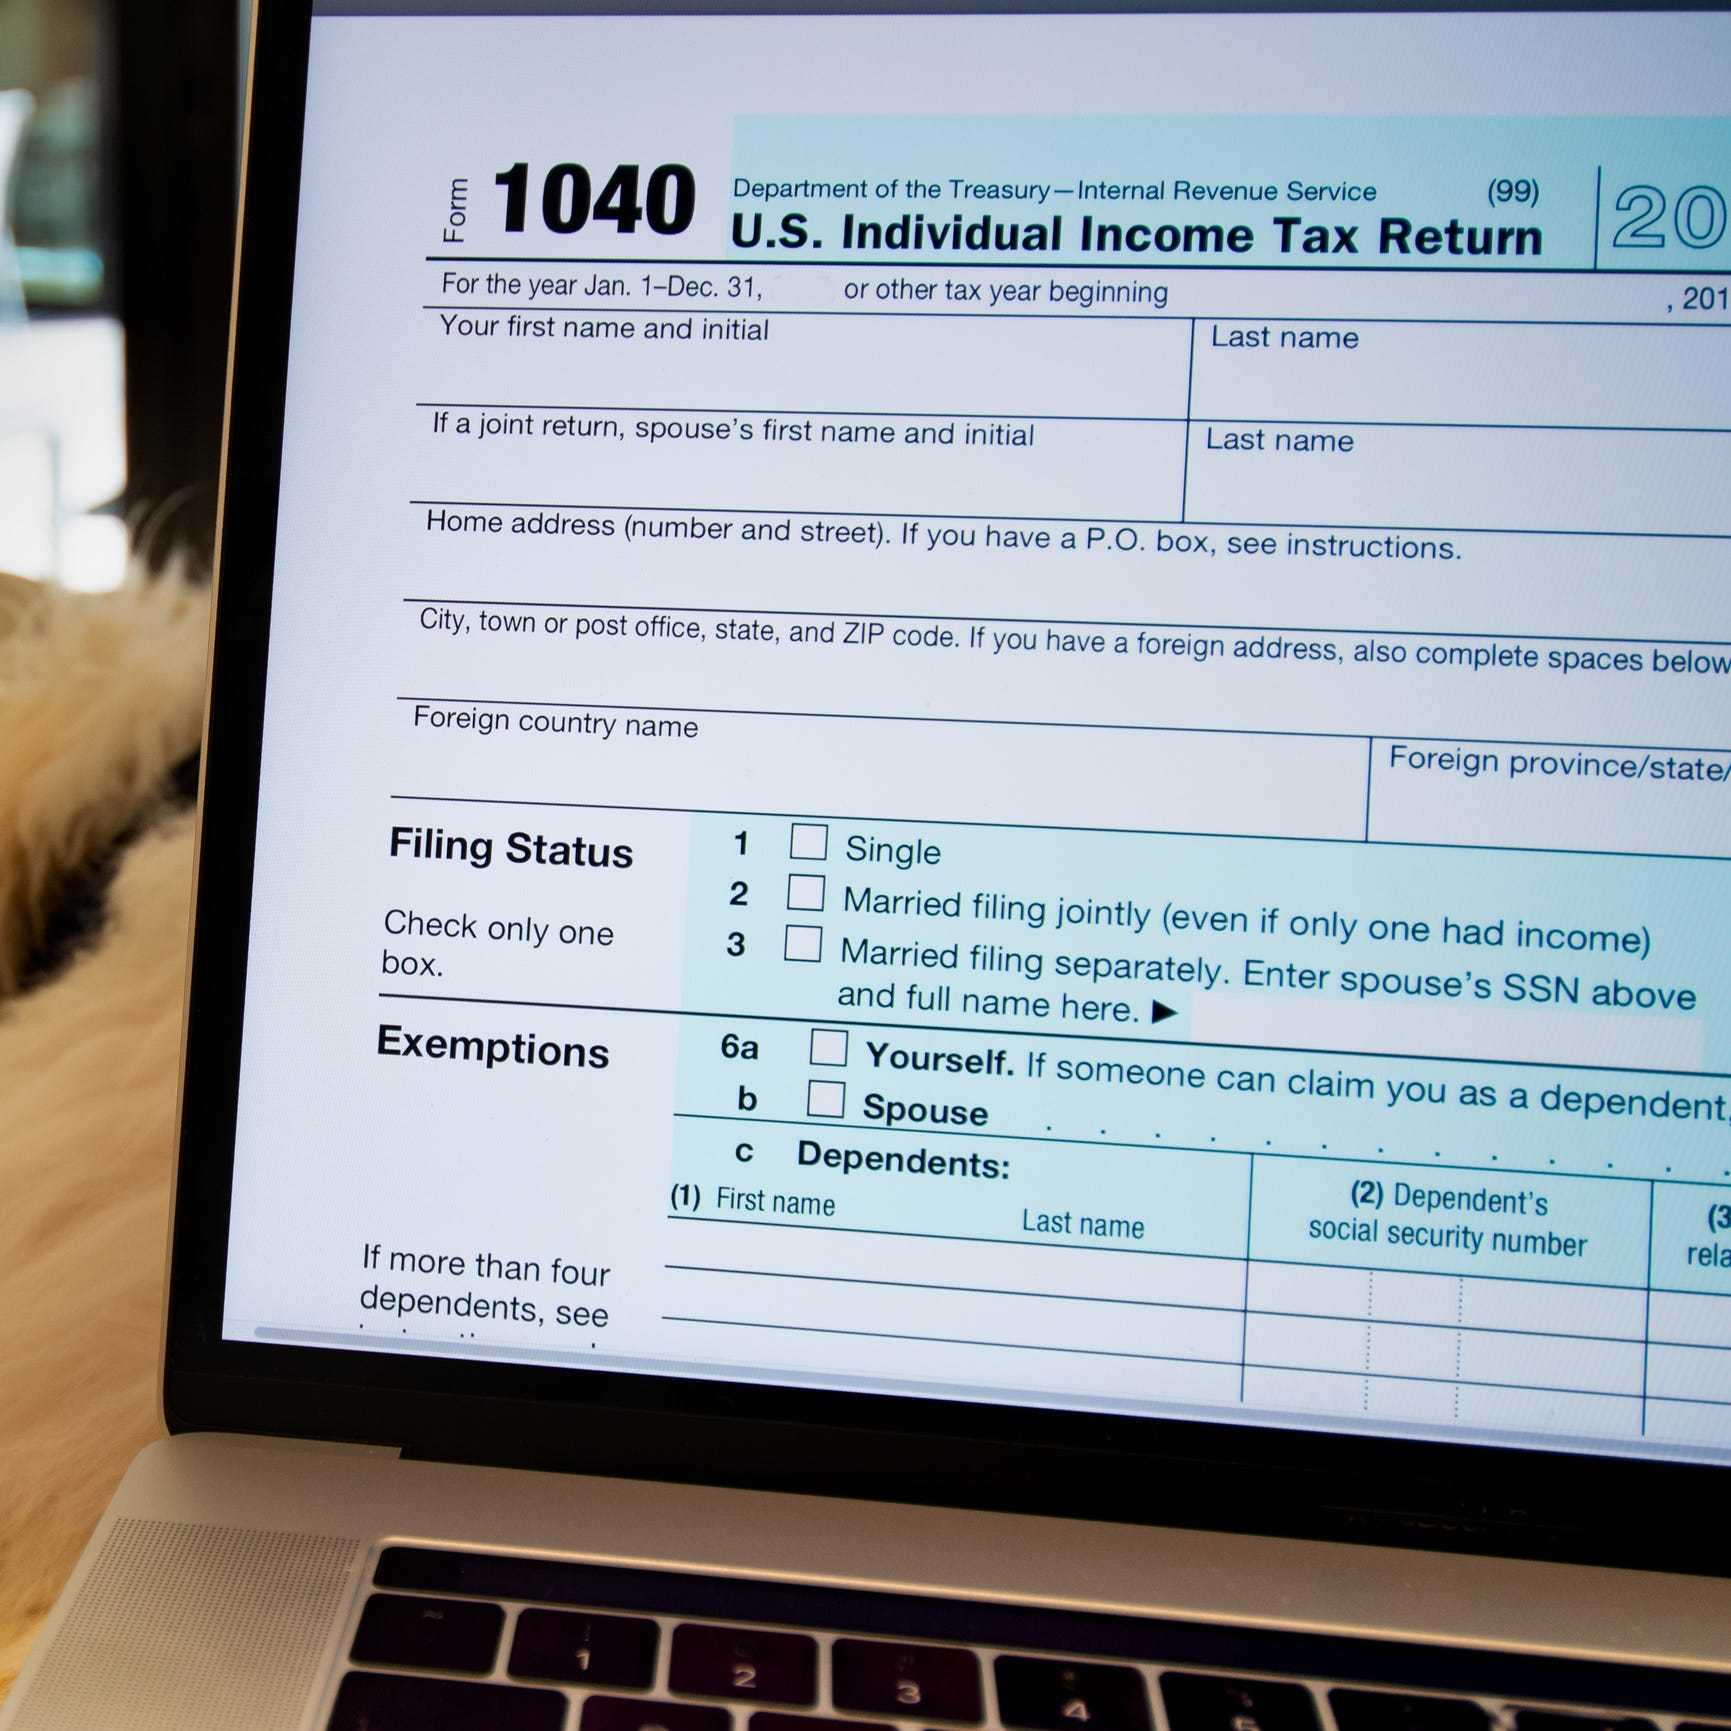 Now that tax season has ended, it's time to start thinking about your taxes